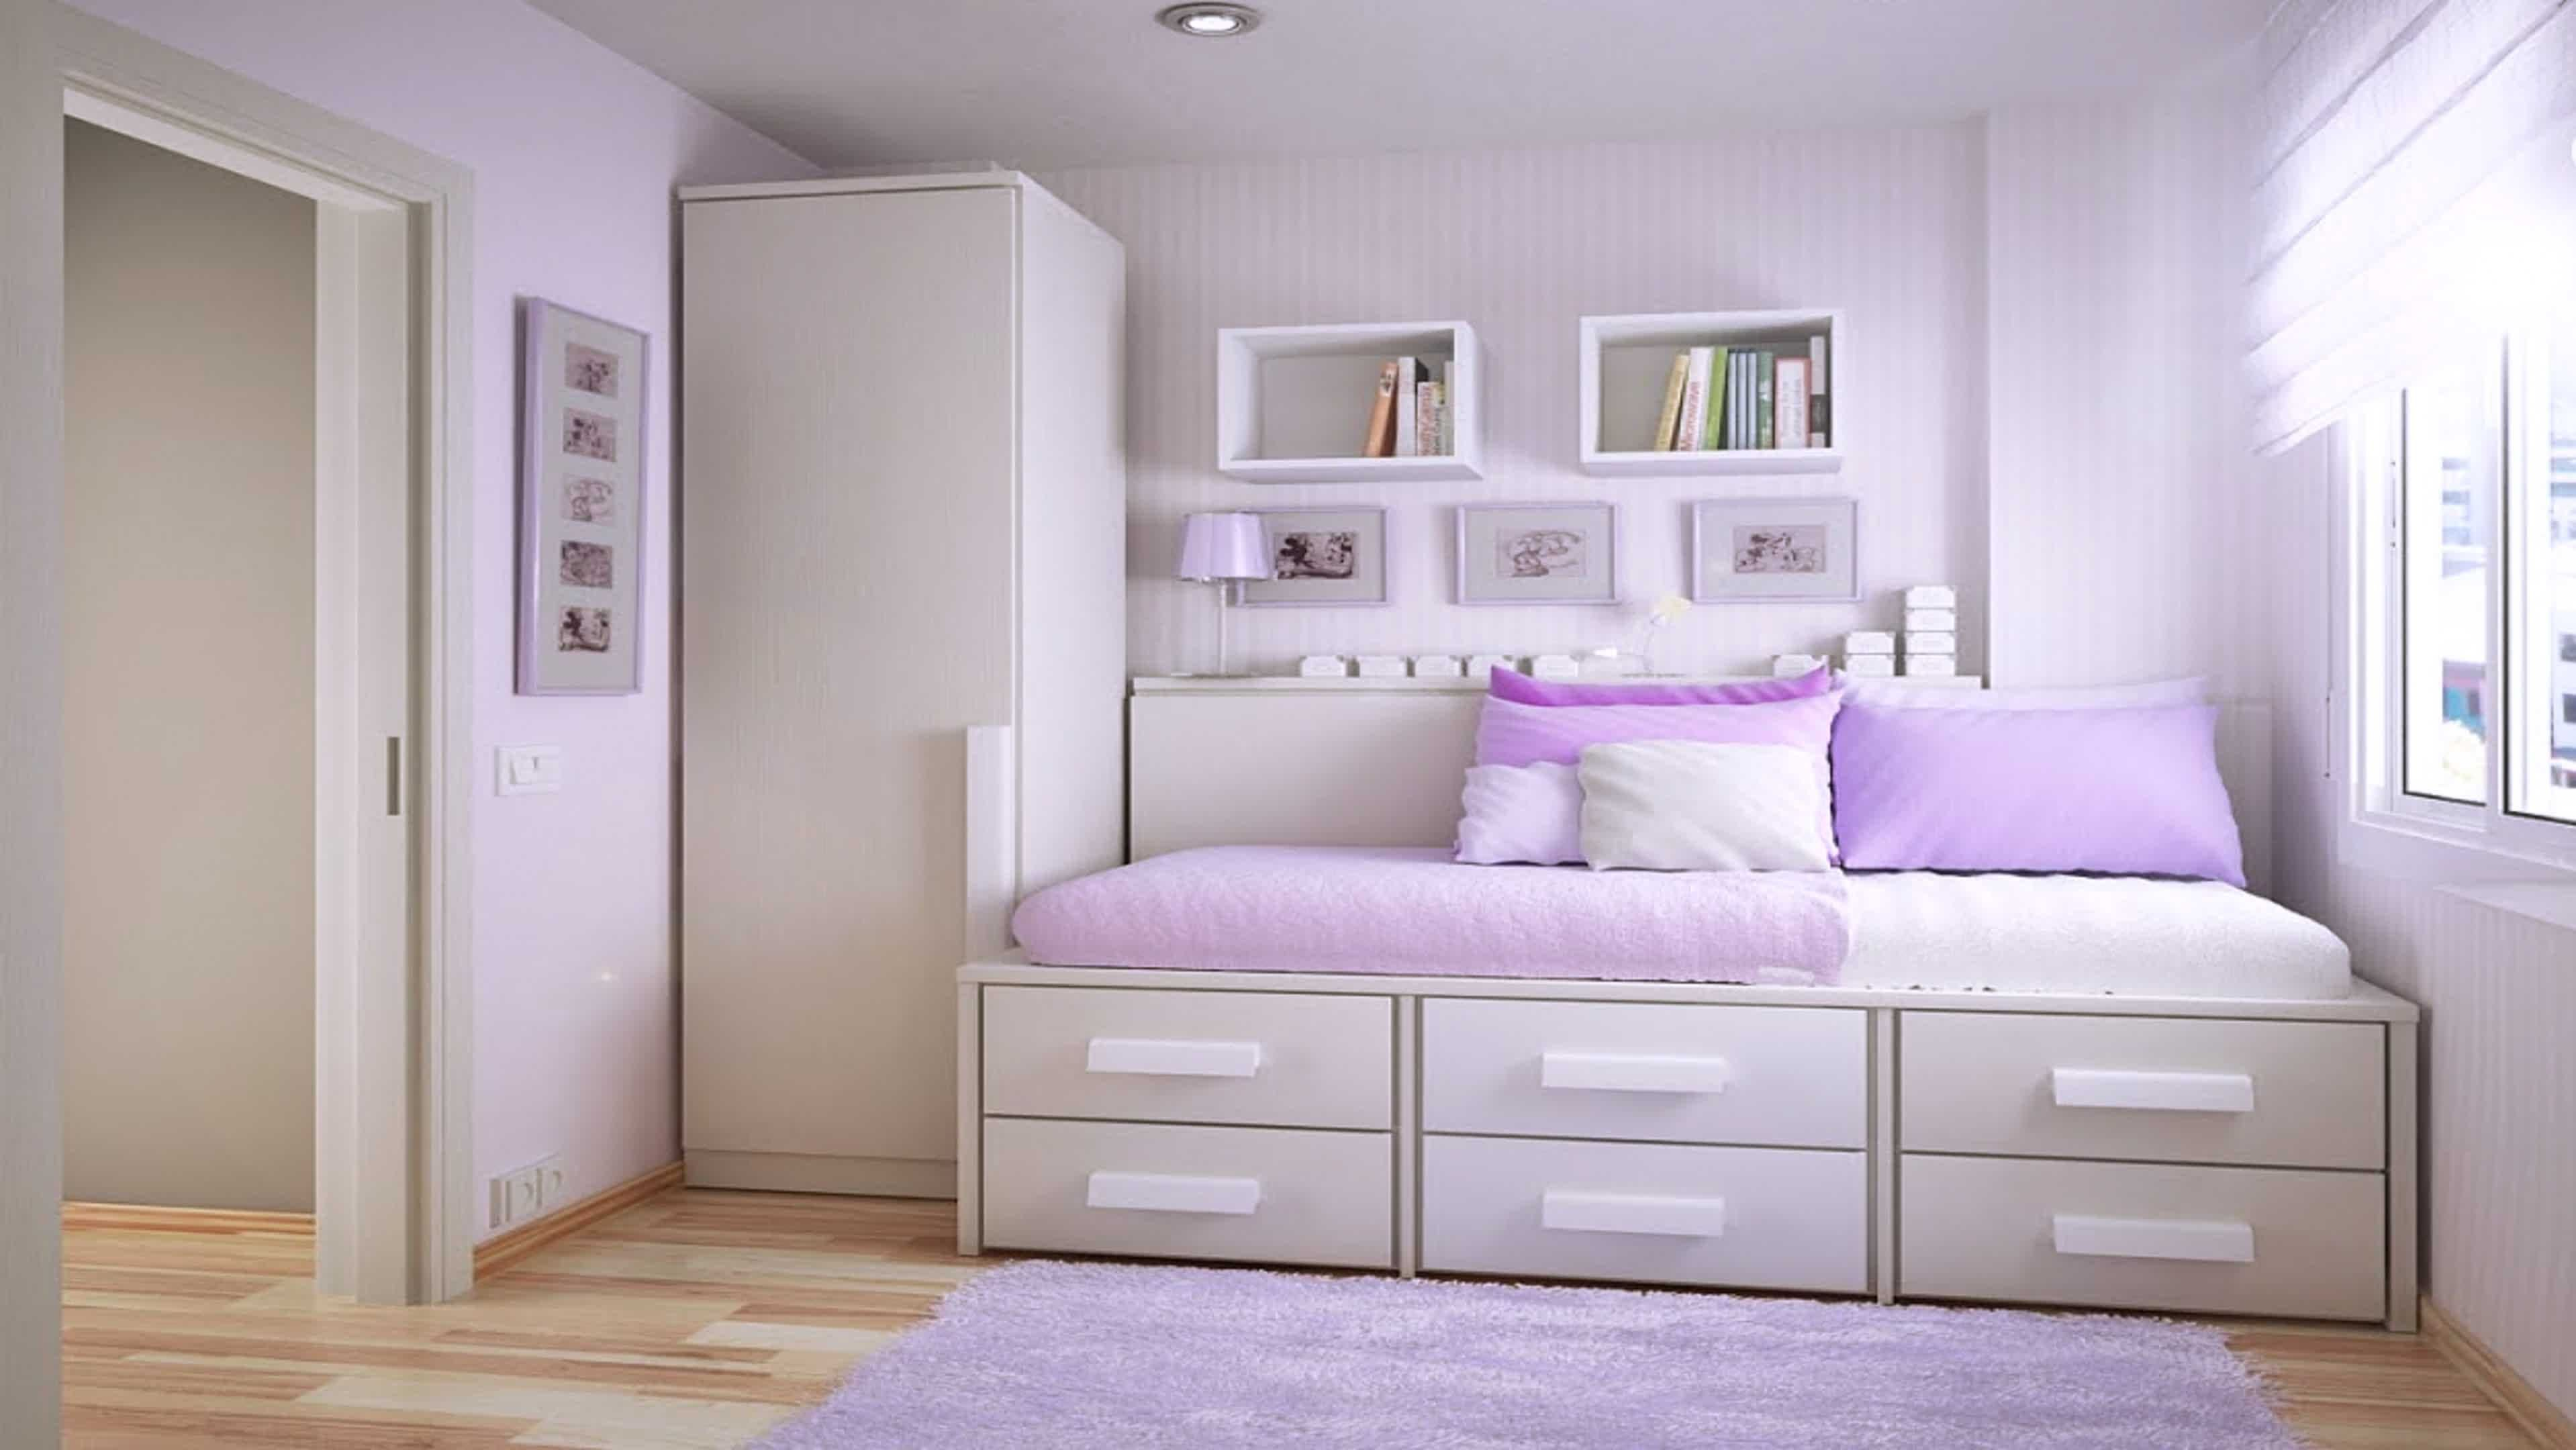 Simple bedroom design for teenage girl home design - Teenage girl bedroom furniture ideas ...